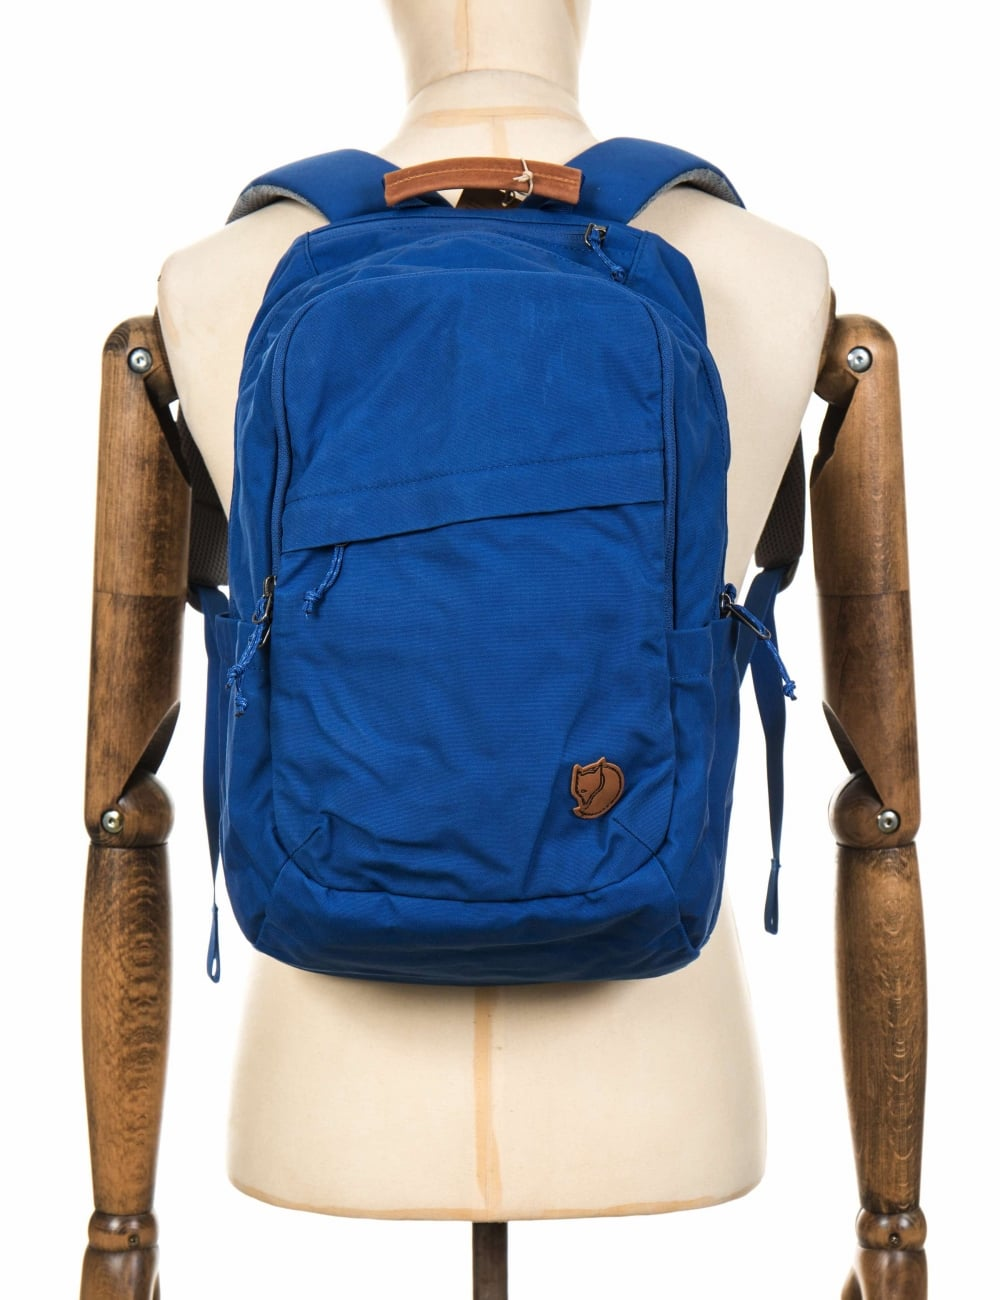 1c37adf41 Fjallraven Raven 20L Backpack - Deep Blue - Accessories from Fat ...